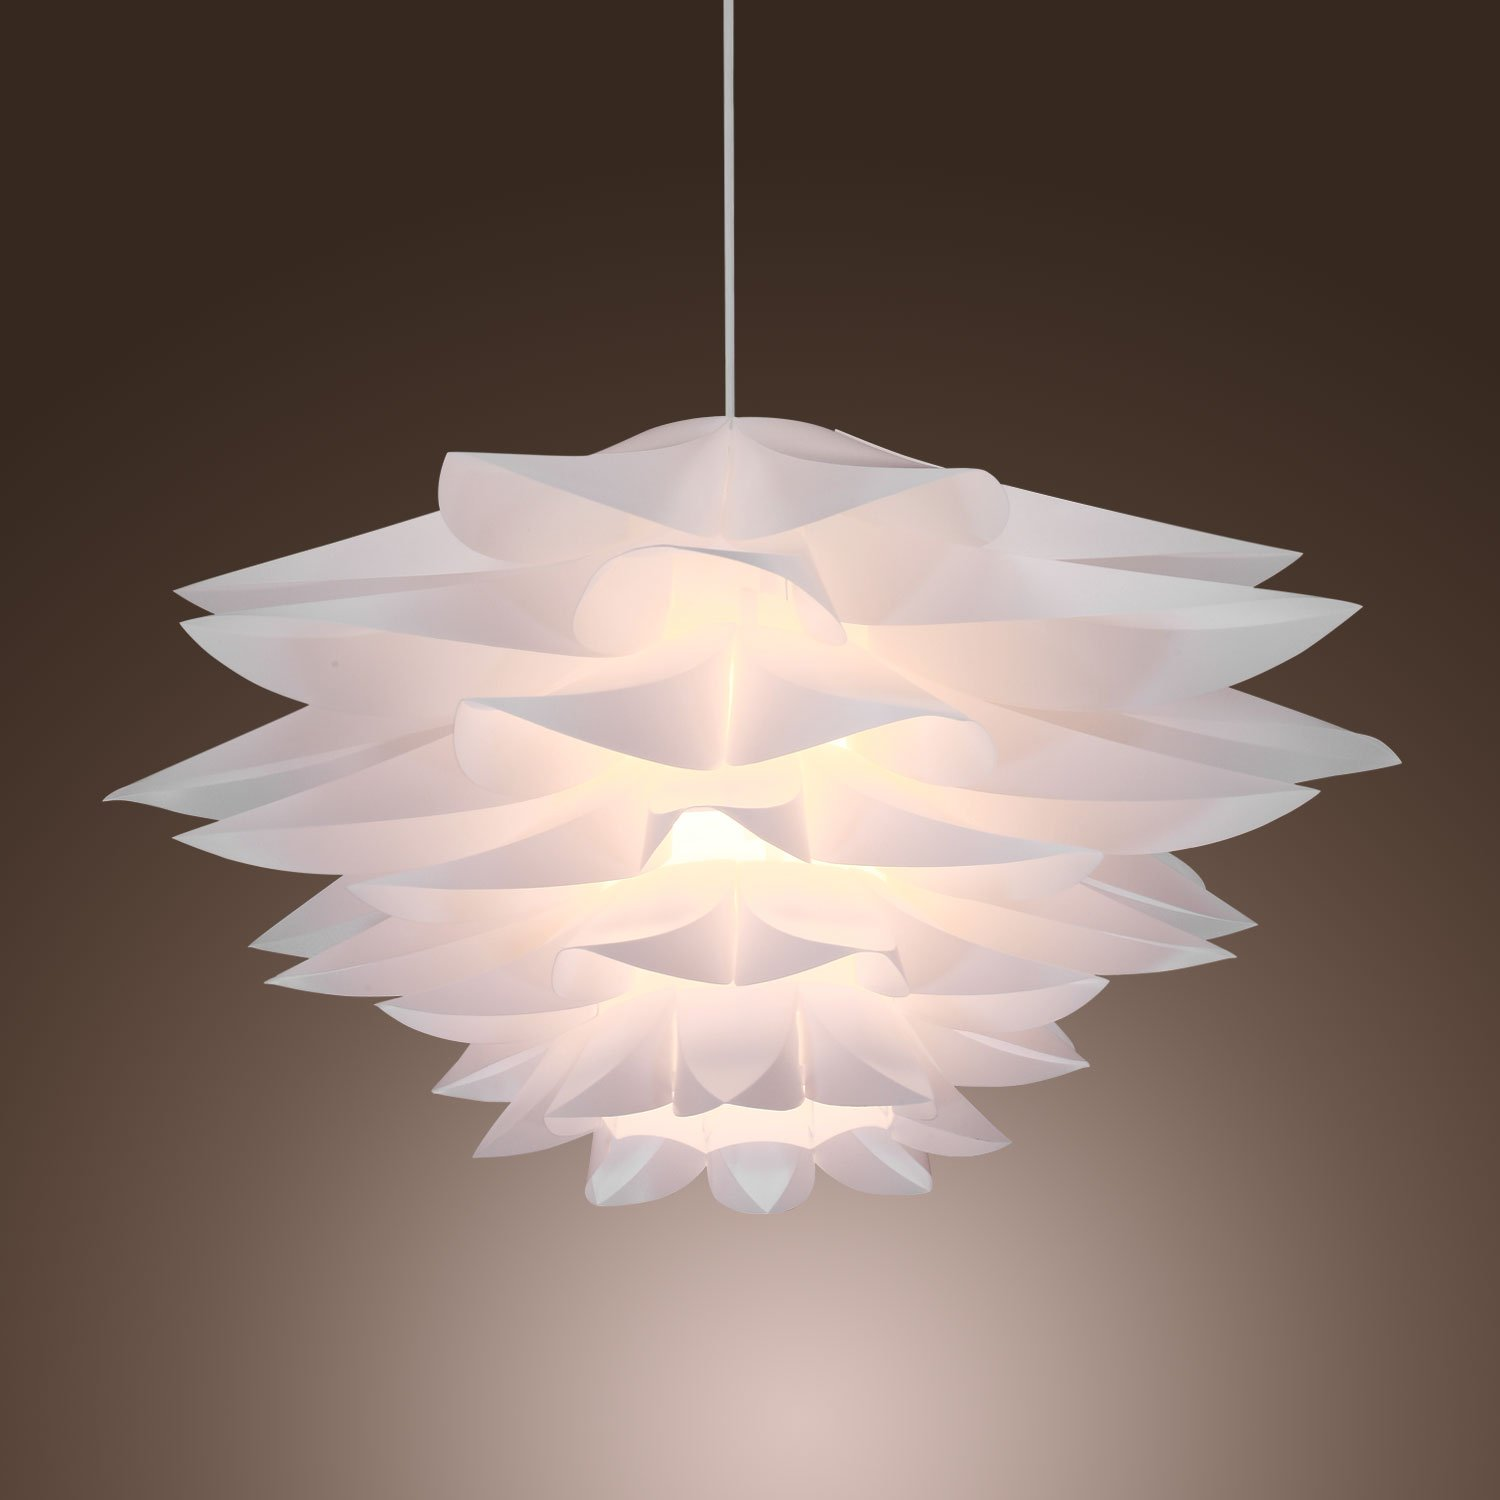 Lightinthebox 60w floral pendant light in petal featured shade lightinthebox 60w floral pendant light in petal featured shade modern ceiling light fixture for game room dining room bedroom ceiling pendant fixtures arubaitofo Gallery